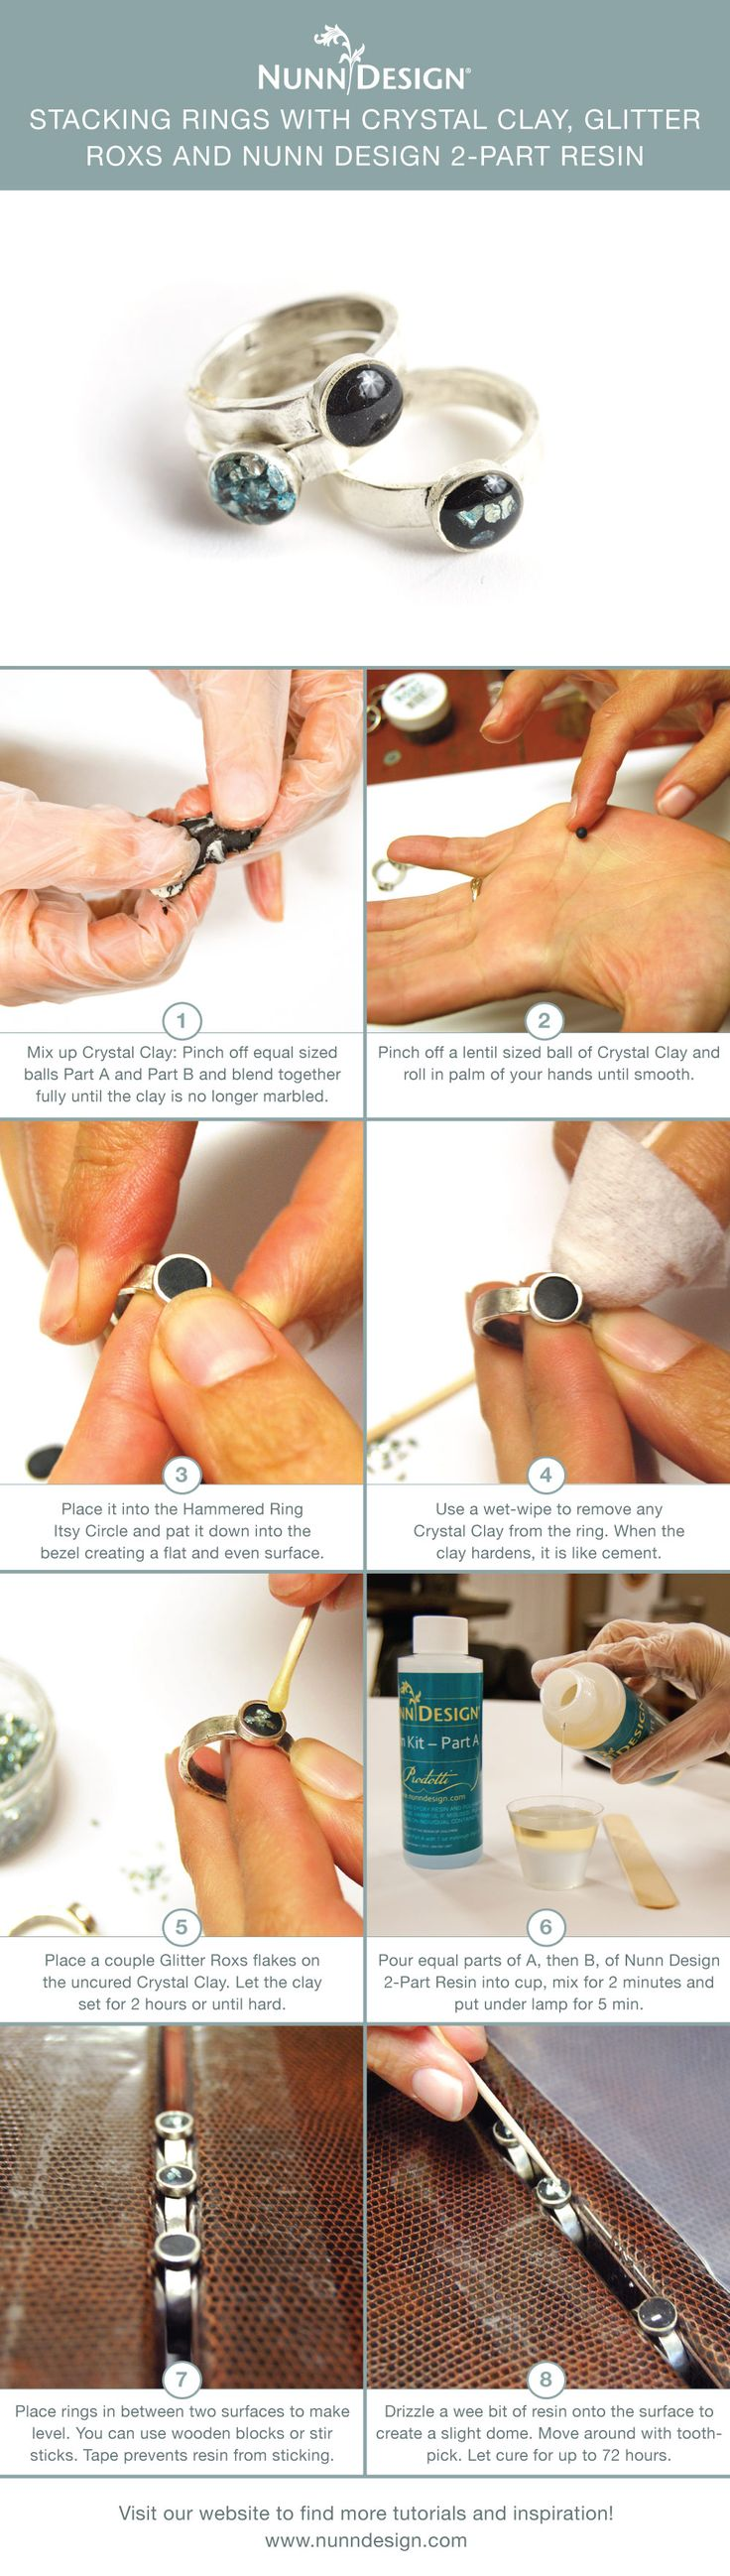 Create unique stacking rings with epoxy clay, Glitter Roxs and Nunn Design 2-Part Resin.